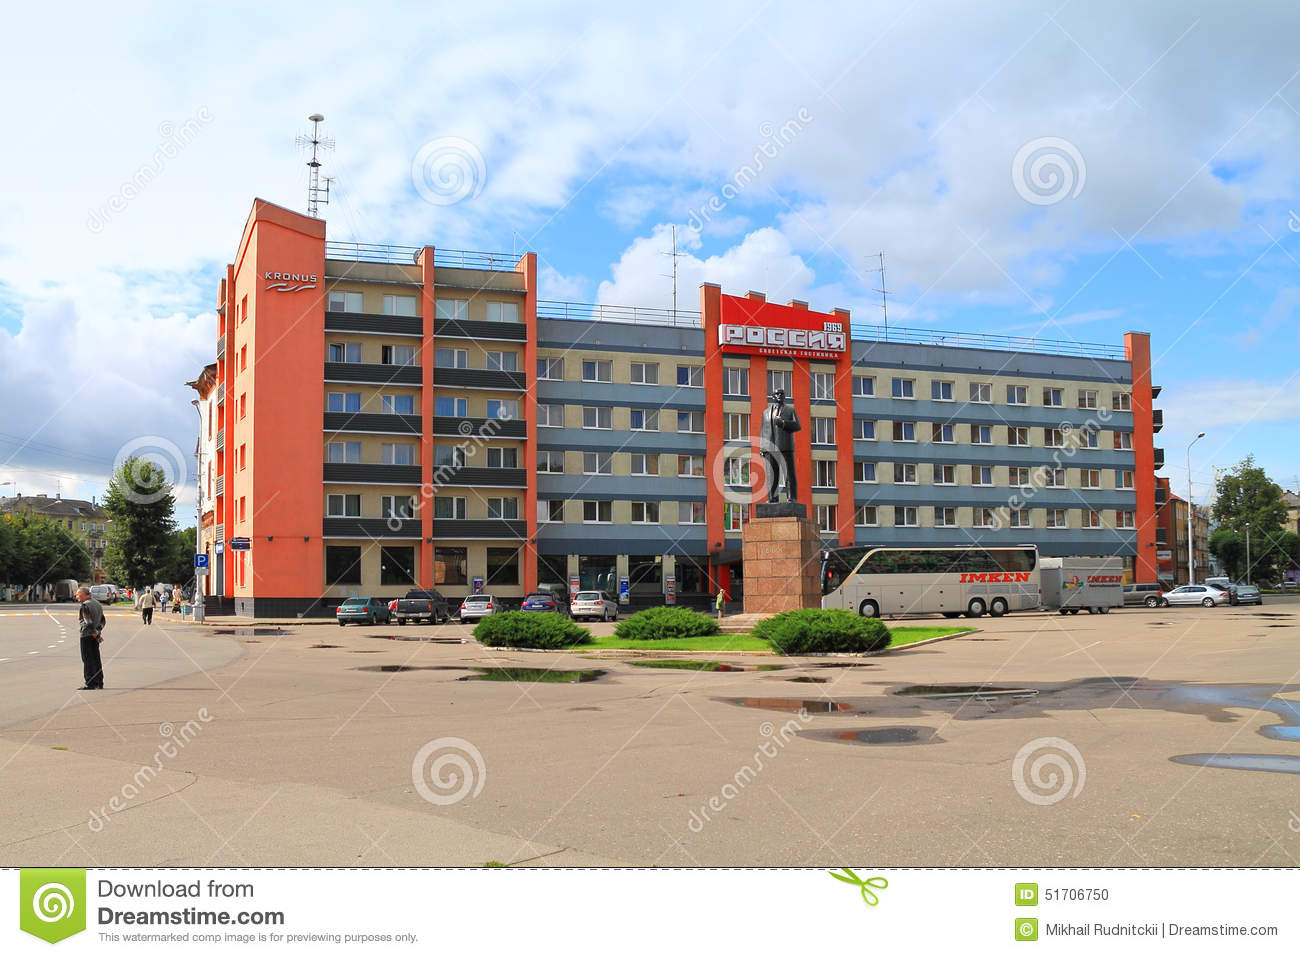 Russia Hotel On A Central Square Of The City Of Sovetsk